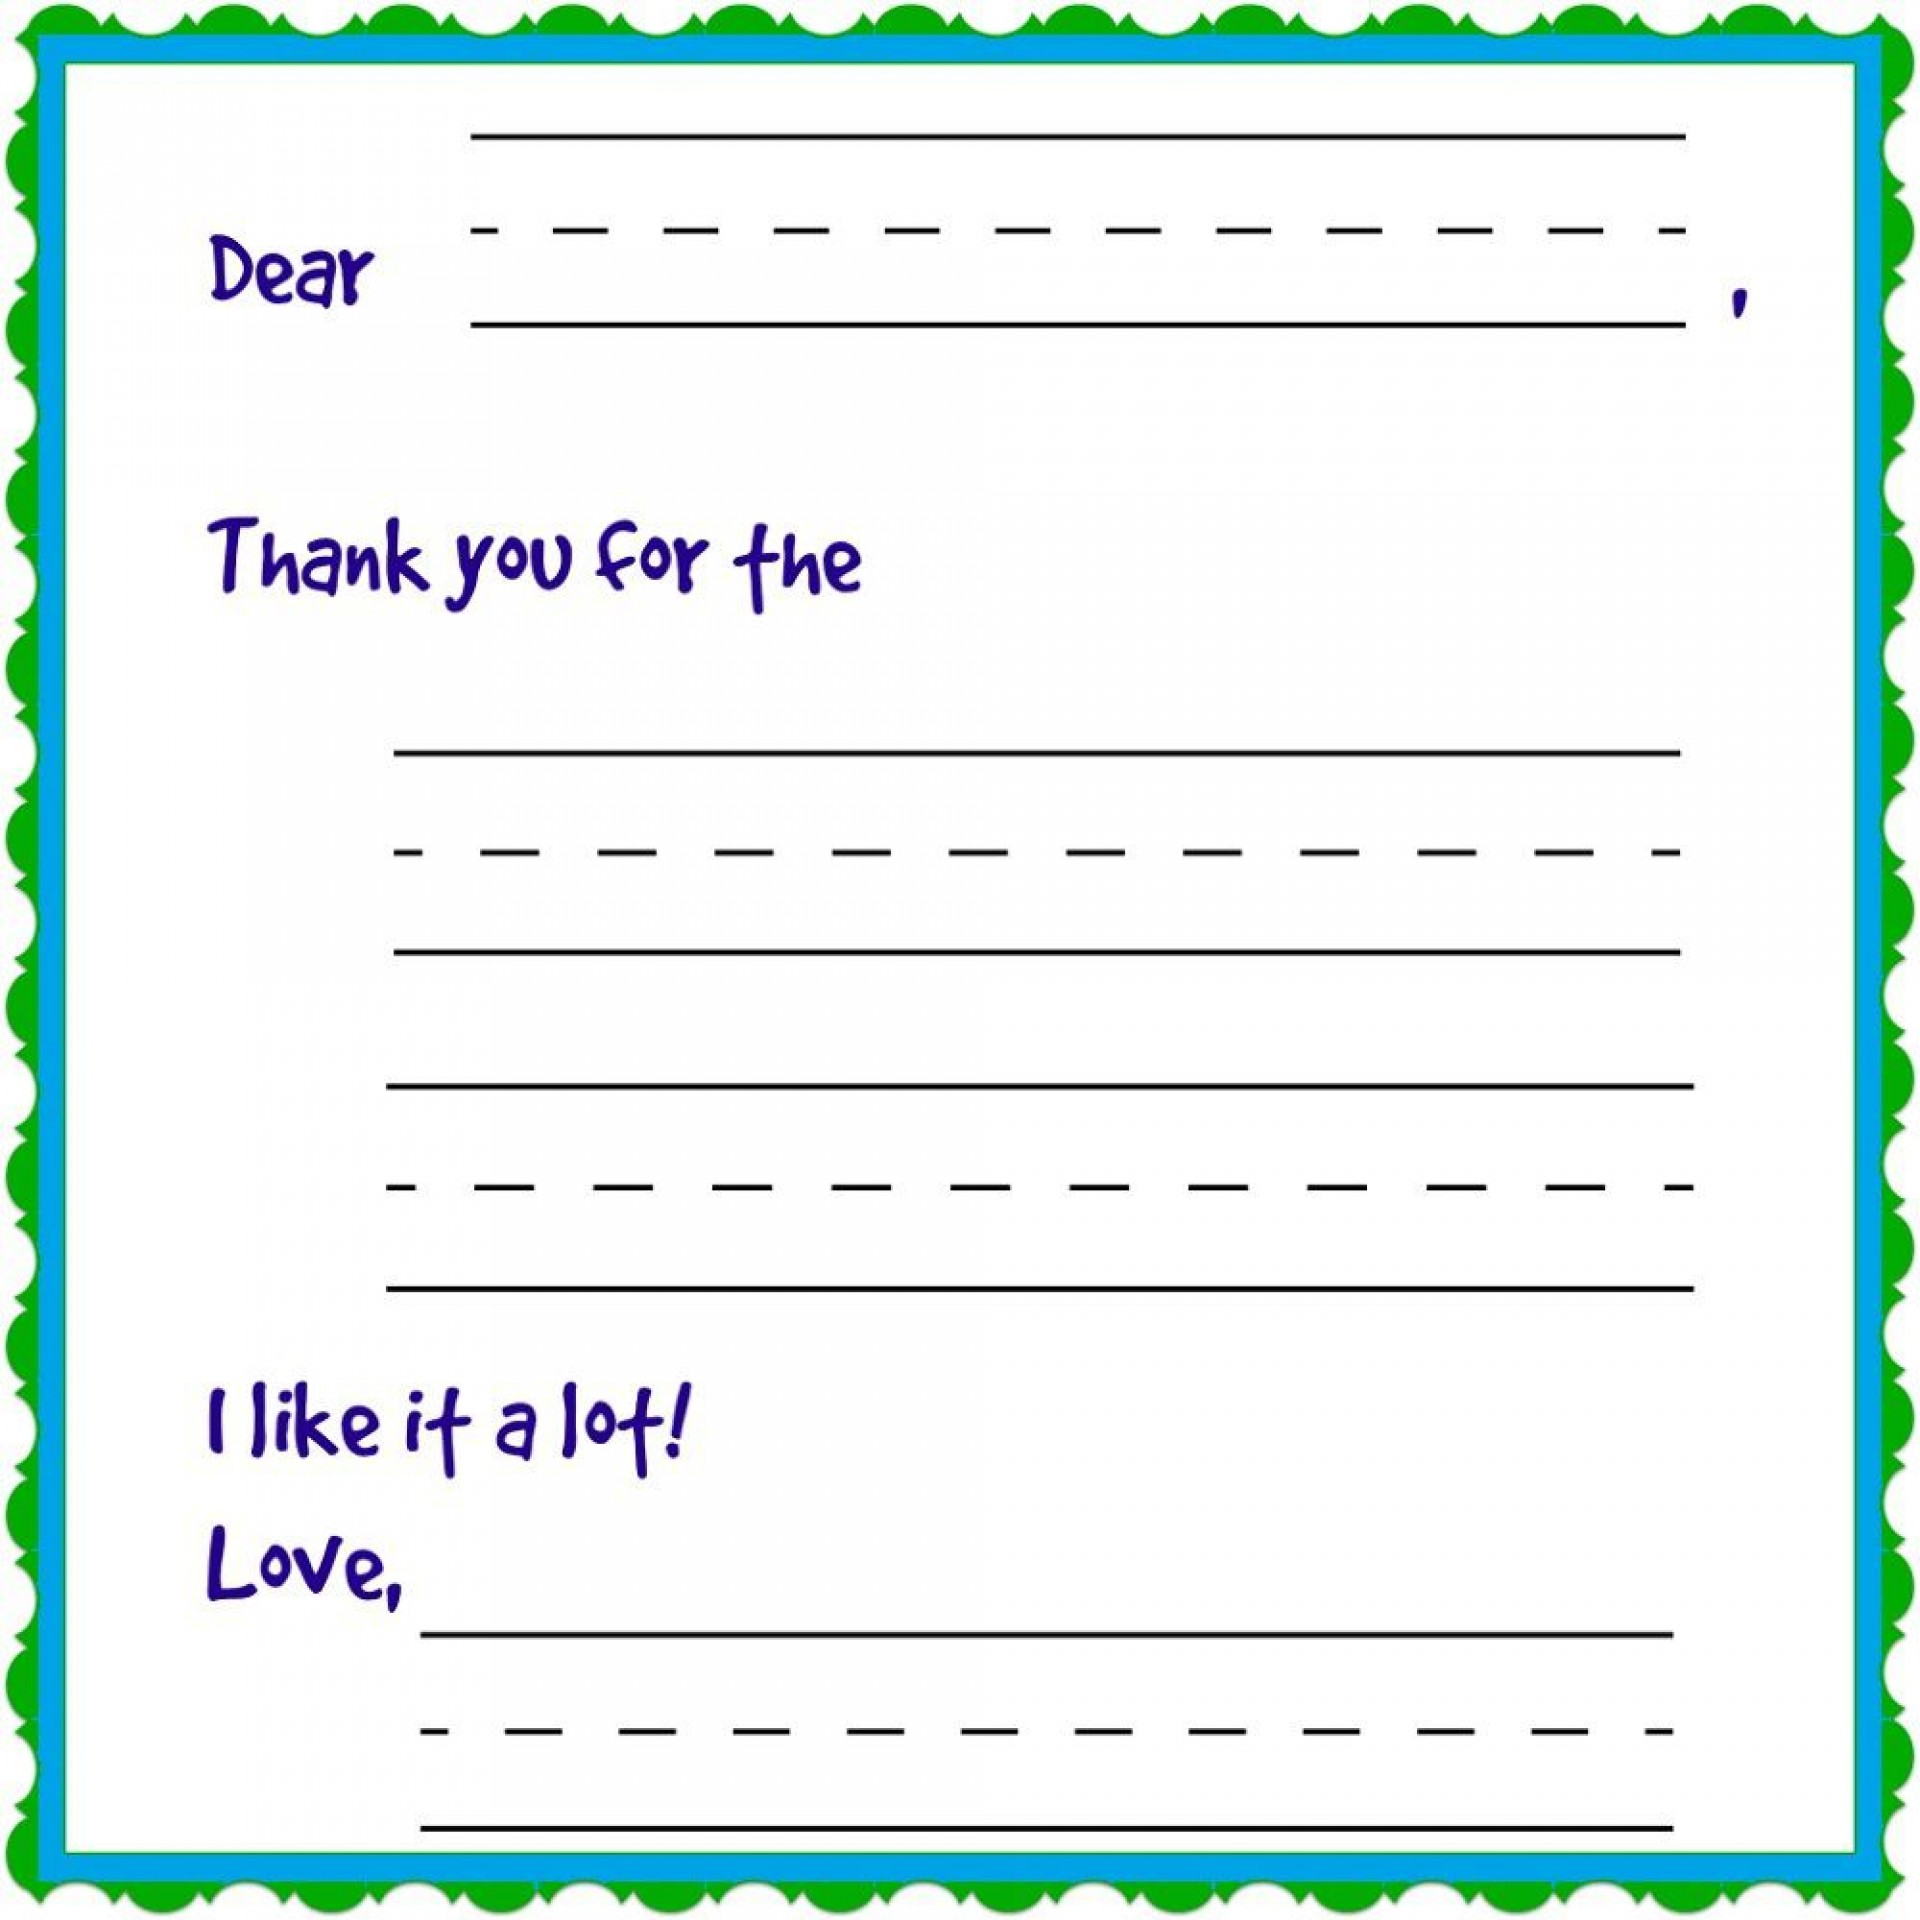 009 Rare Thank You Note Template For Kid High Def  Kids Child Pdf Letter1920